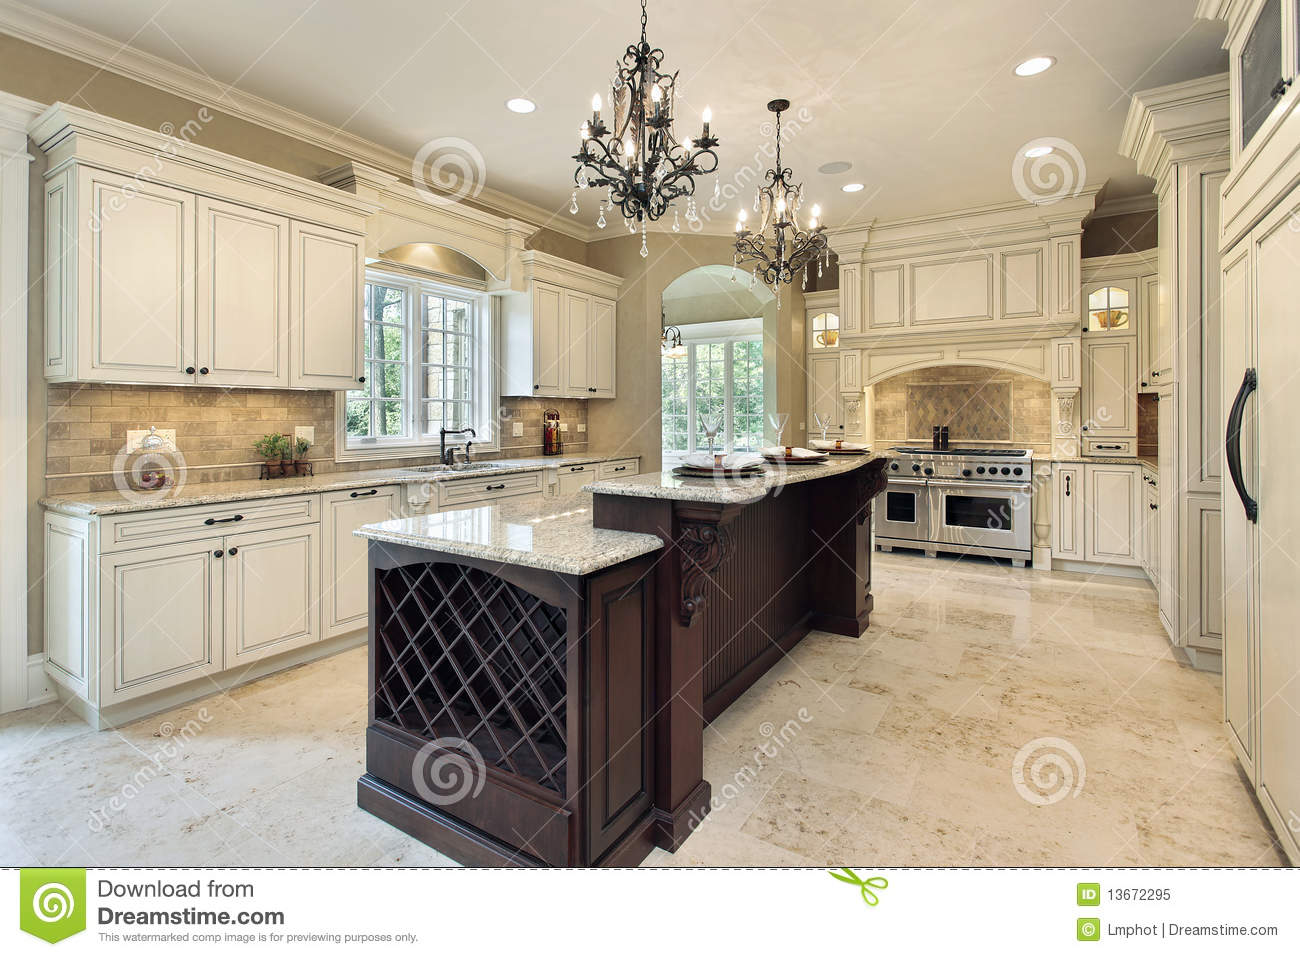 Kitchen Floor Plans Island Kitchen With Double Deck Island Royalty Free Stock Photo